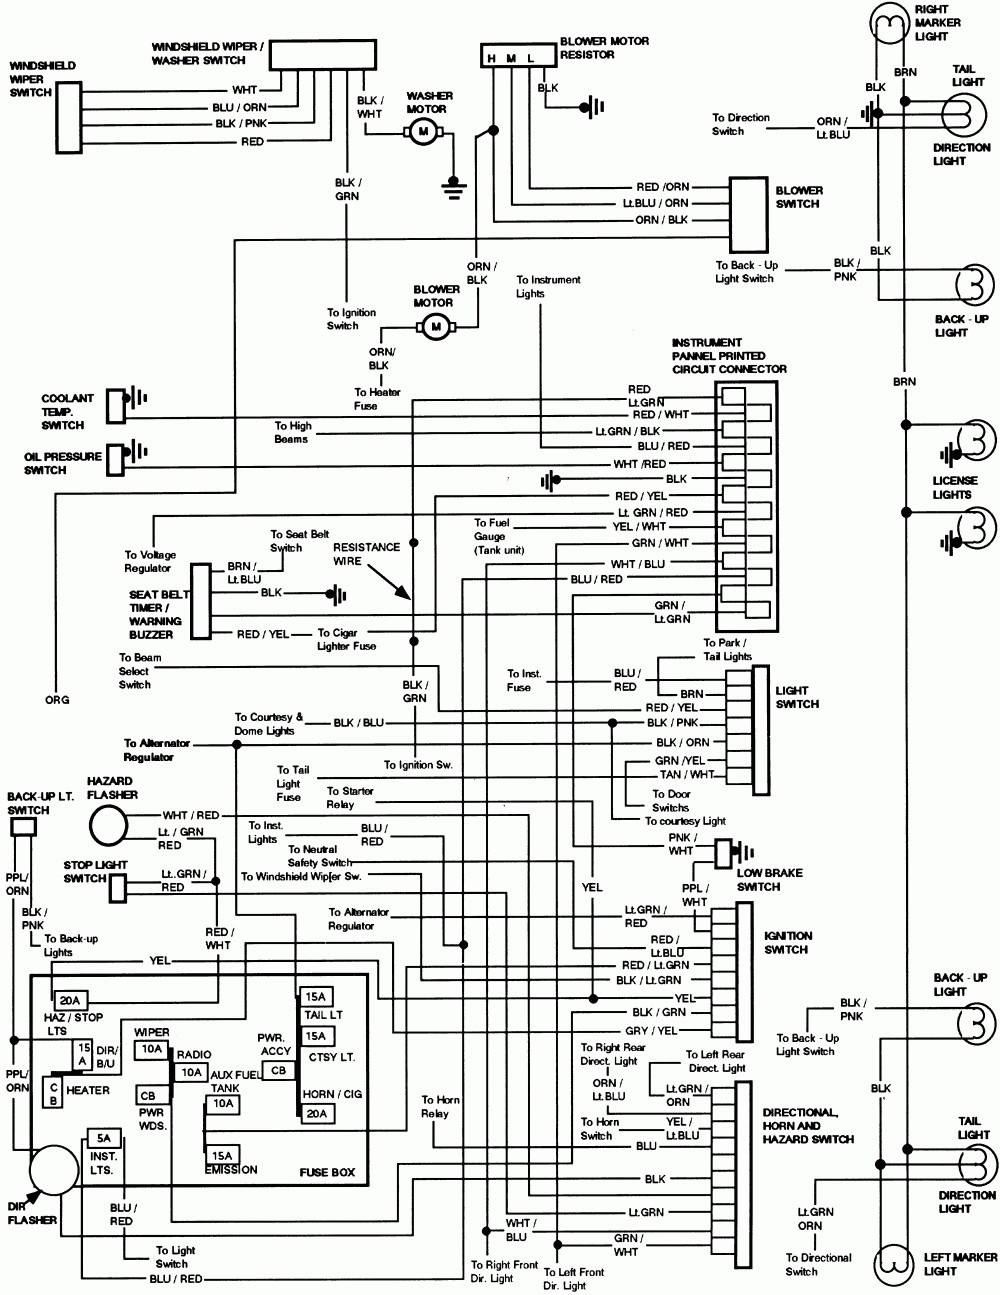 medium resolution of 1988 ford econoline econoline fuse diagram wiring diagram used1988 ford e150 wiring diagram wiring diagram for